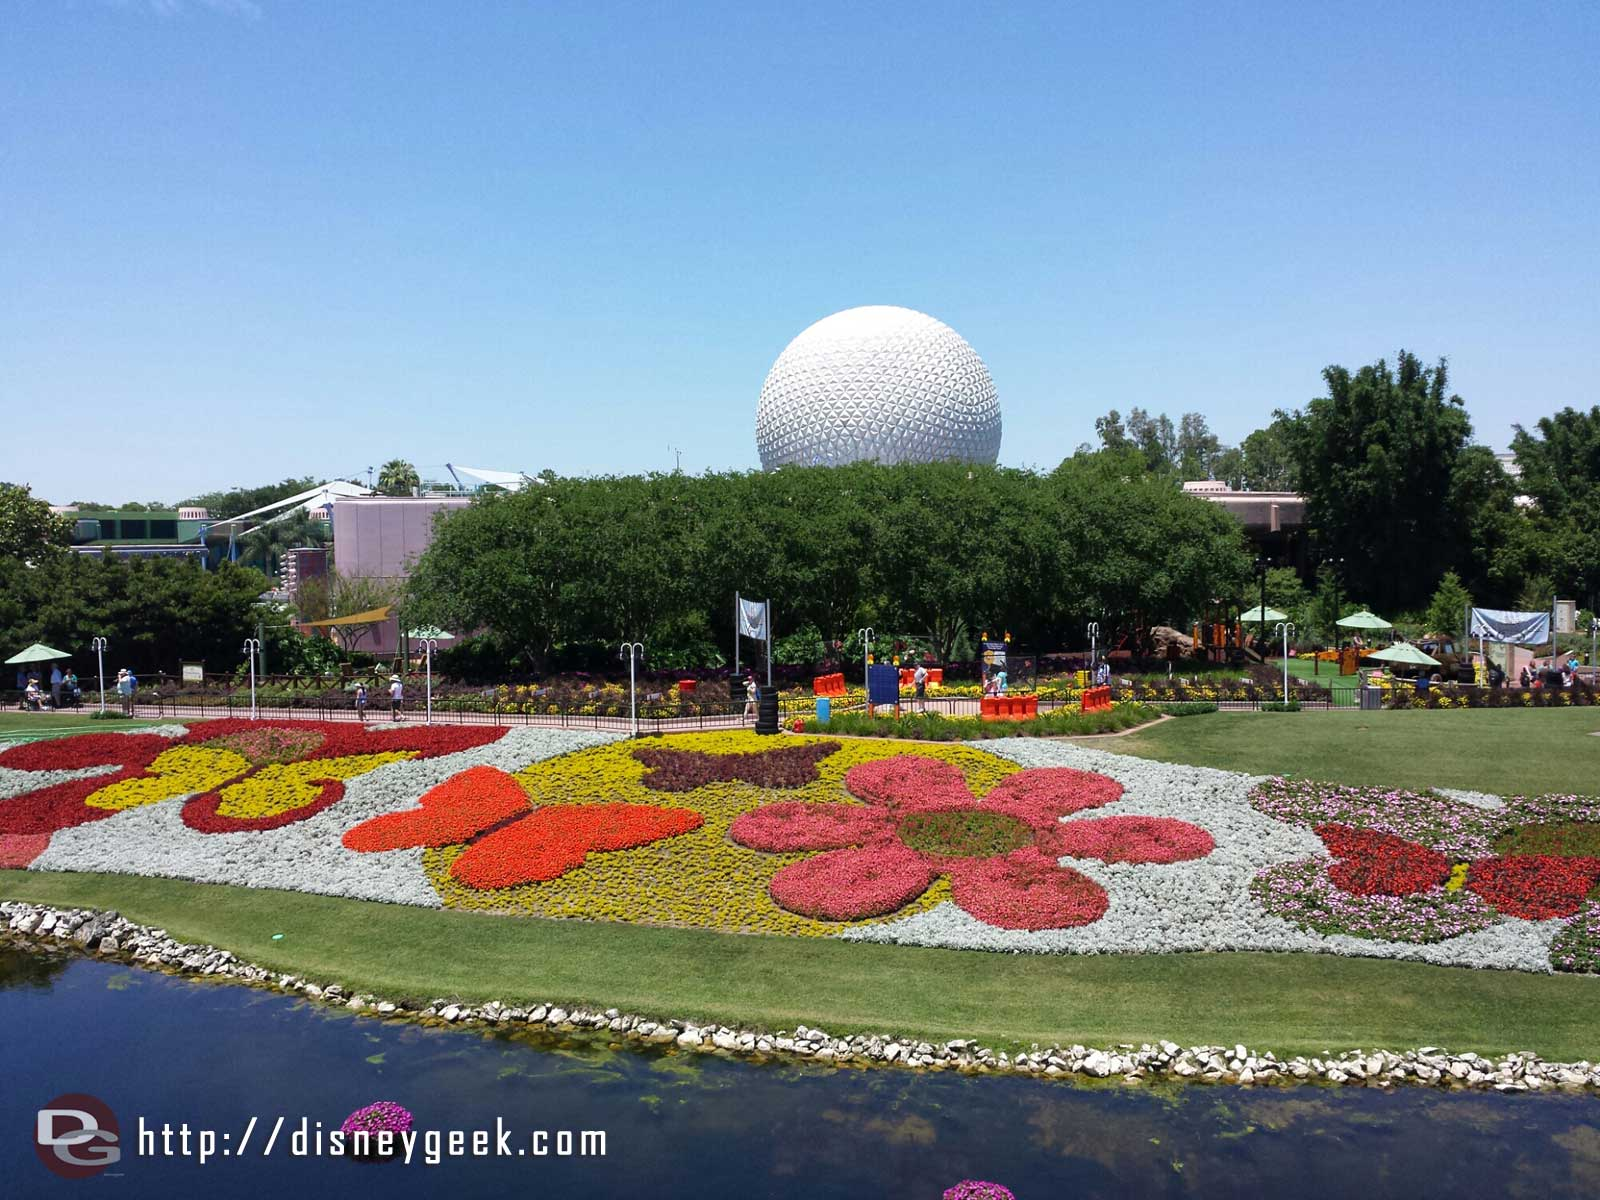 #Epcot International Flower and Garden Festival flower beds from the Monorail